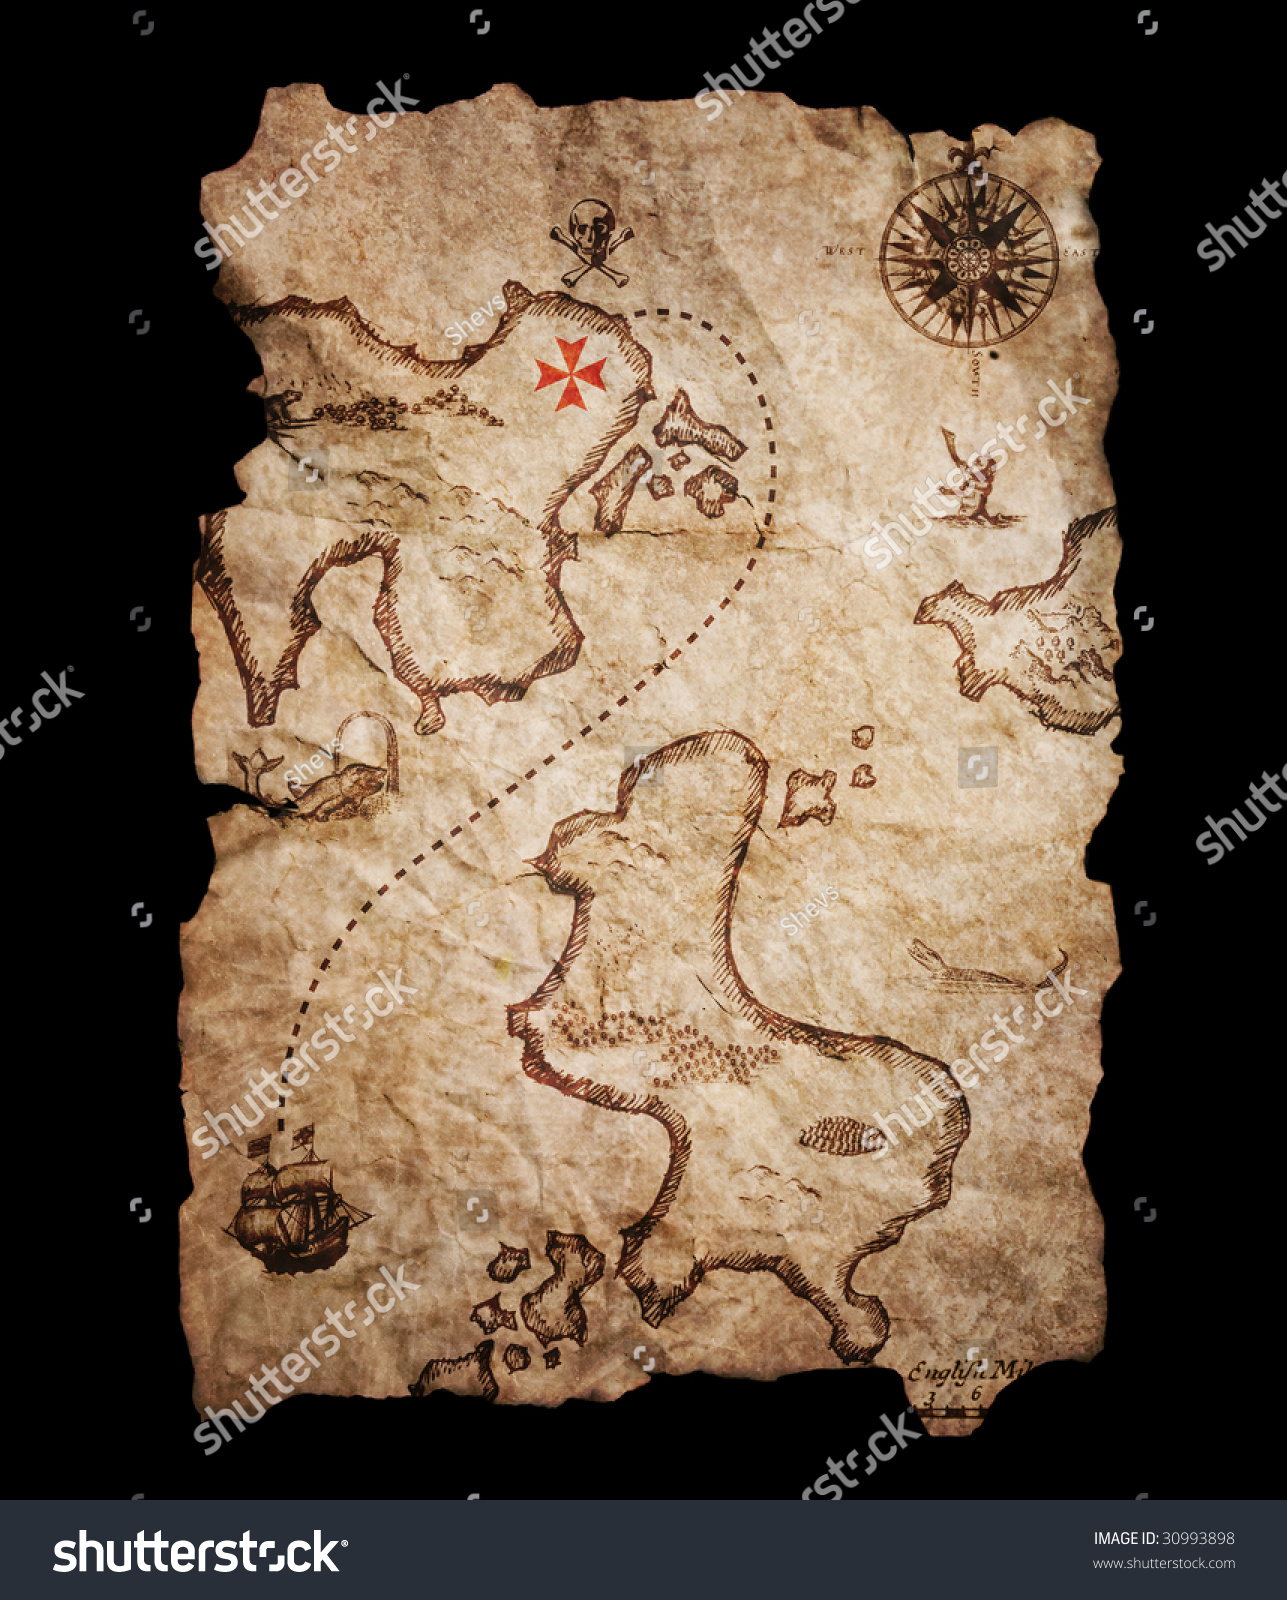 simple treasure maps vintage - photo #40